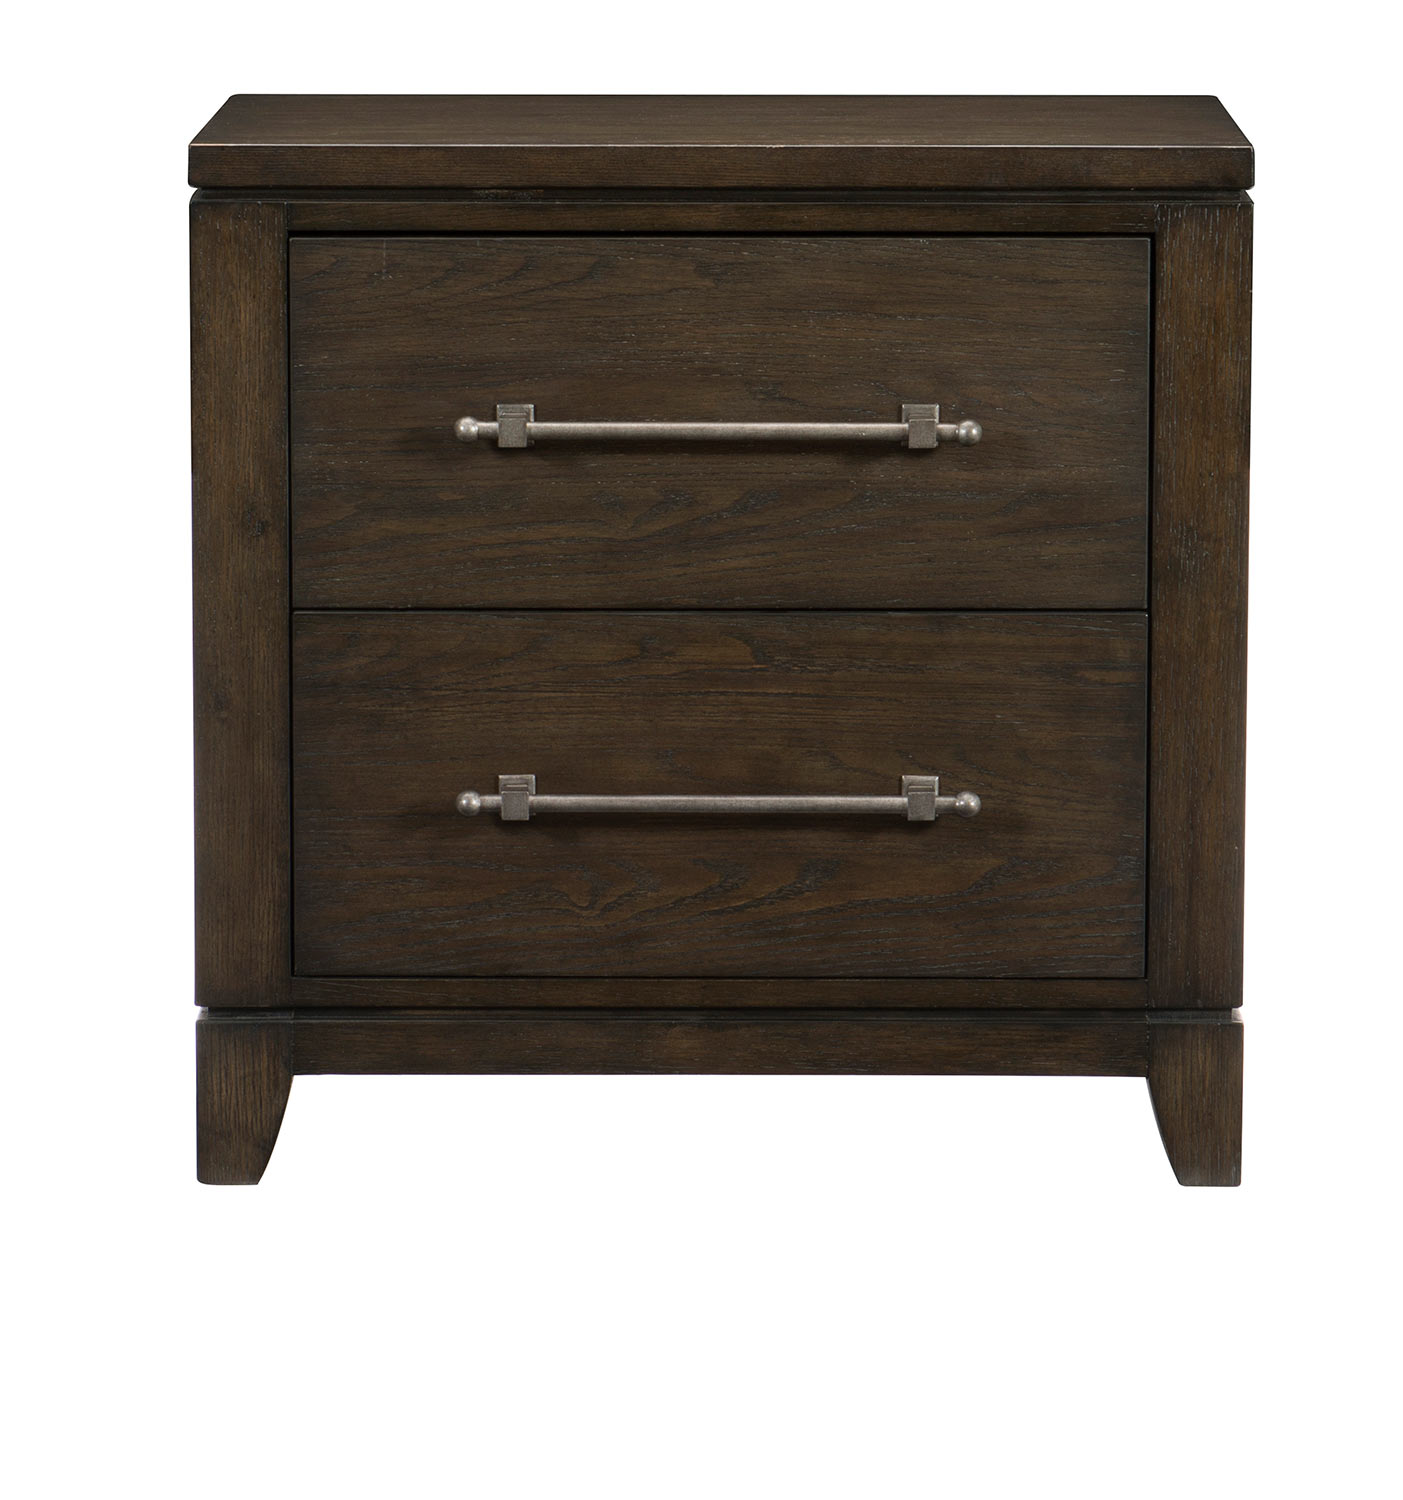 Homelegance Griggs Night Stand - Espresso